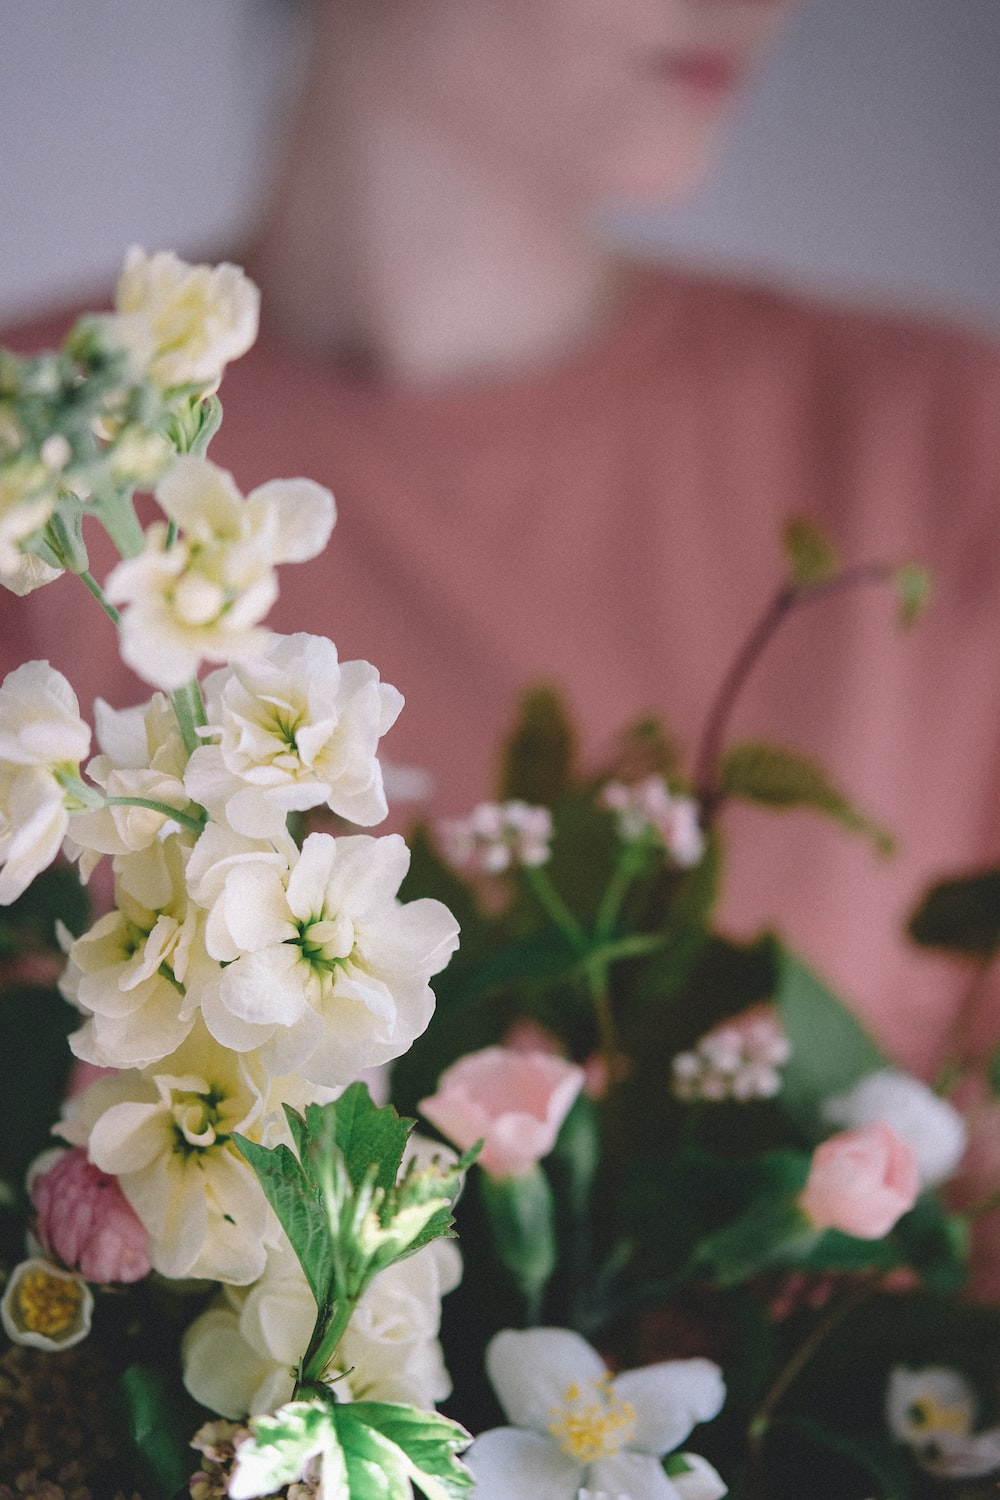 Mothersday Bunch Of Flowers Photo By Peter Bucks Peterbucks On